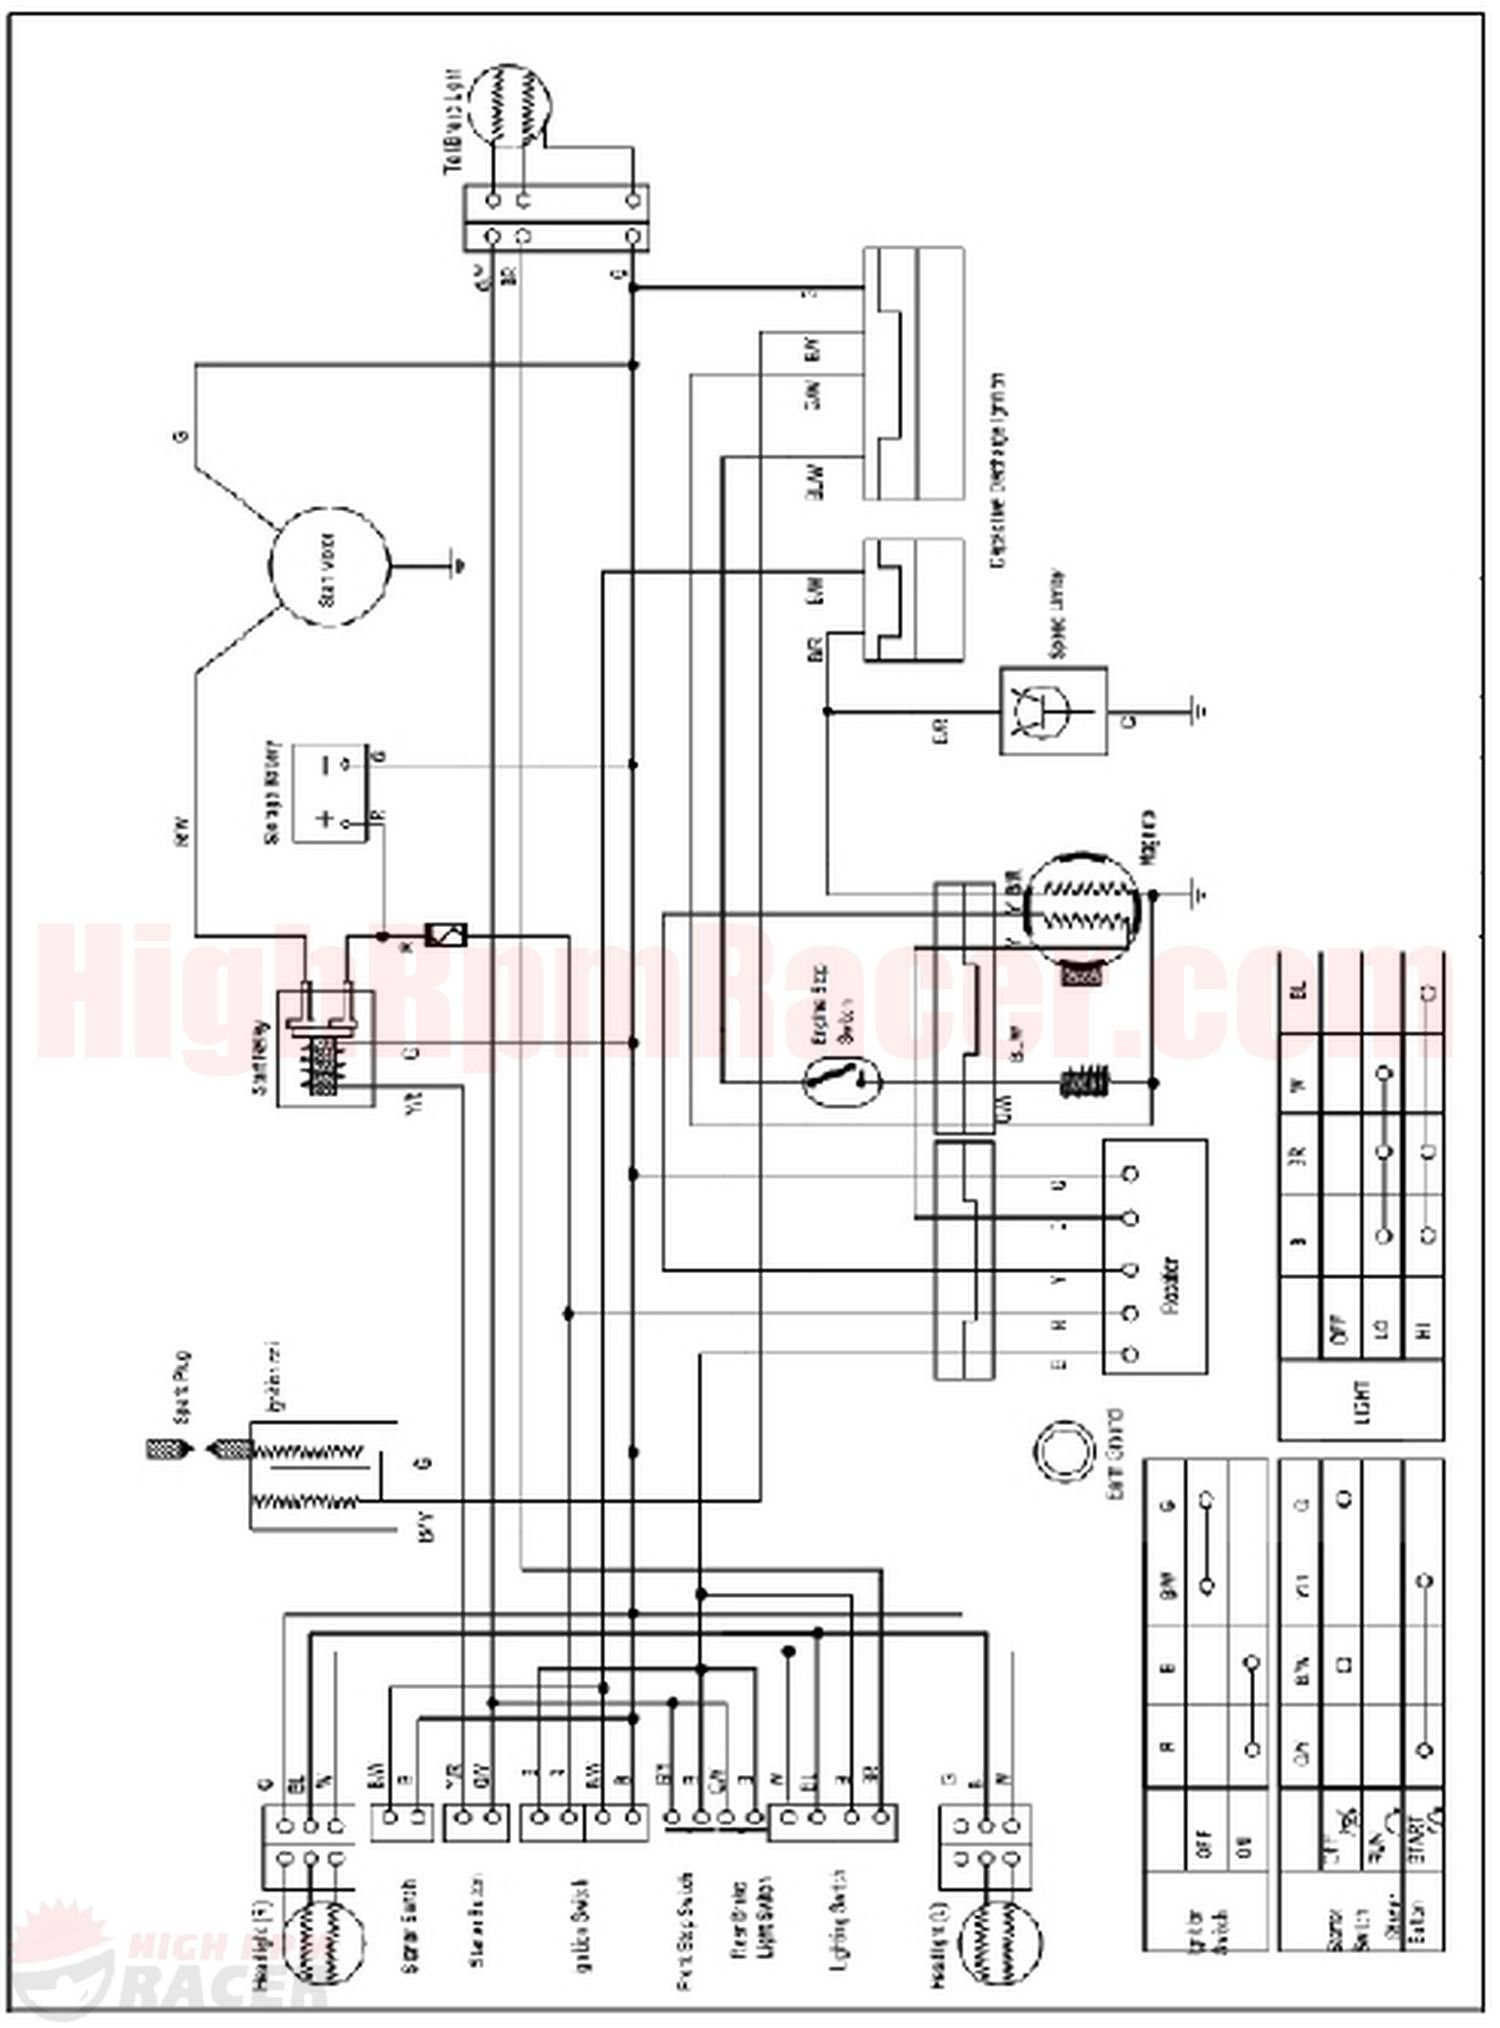 sunl250_wd sunl atv 250 wiring diagram $0 00 Terminator Time Loop Diagram at n-0.co